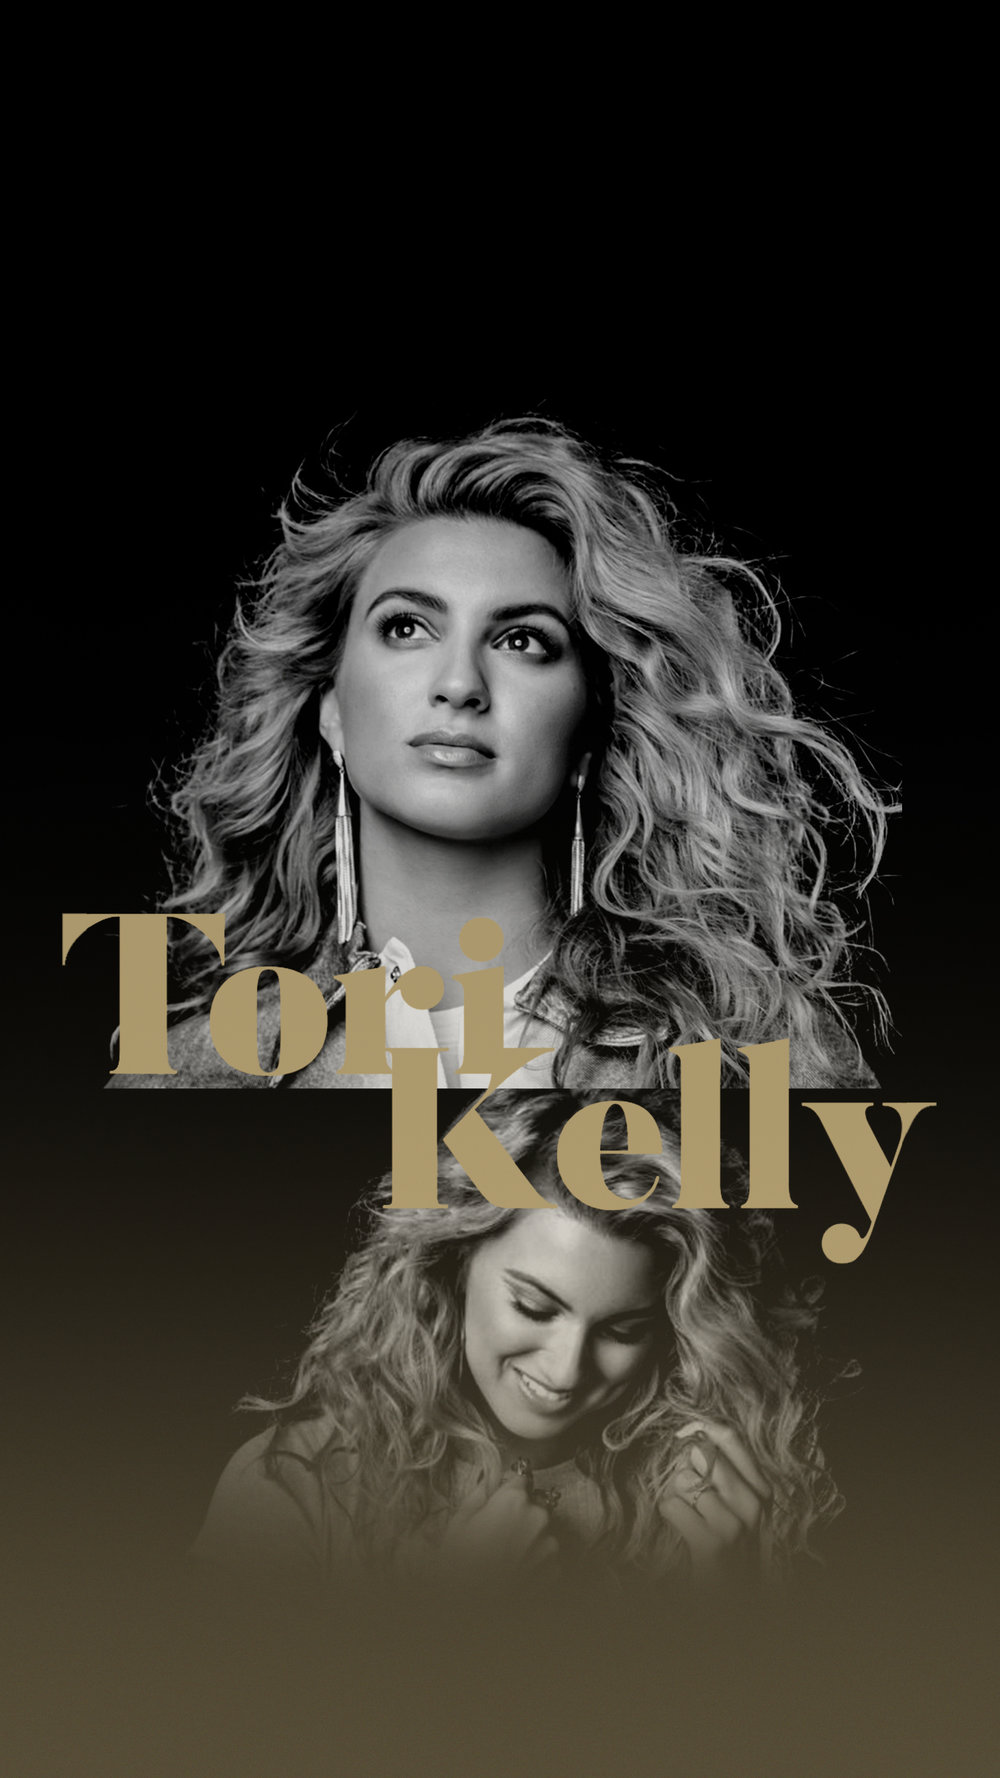 torikelly-lockscreen23.jpg